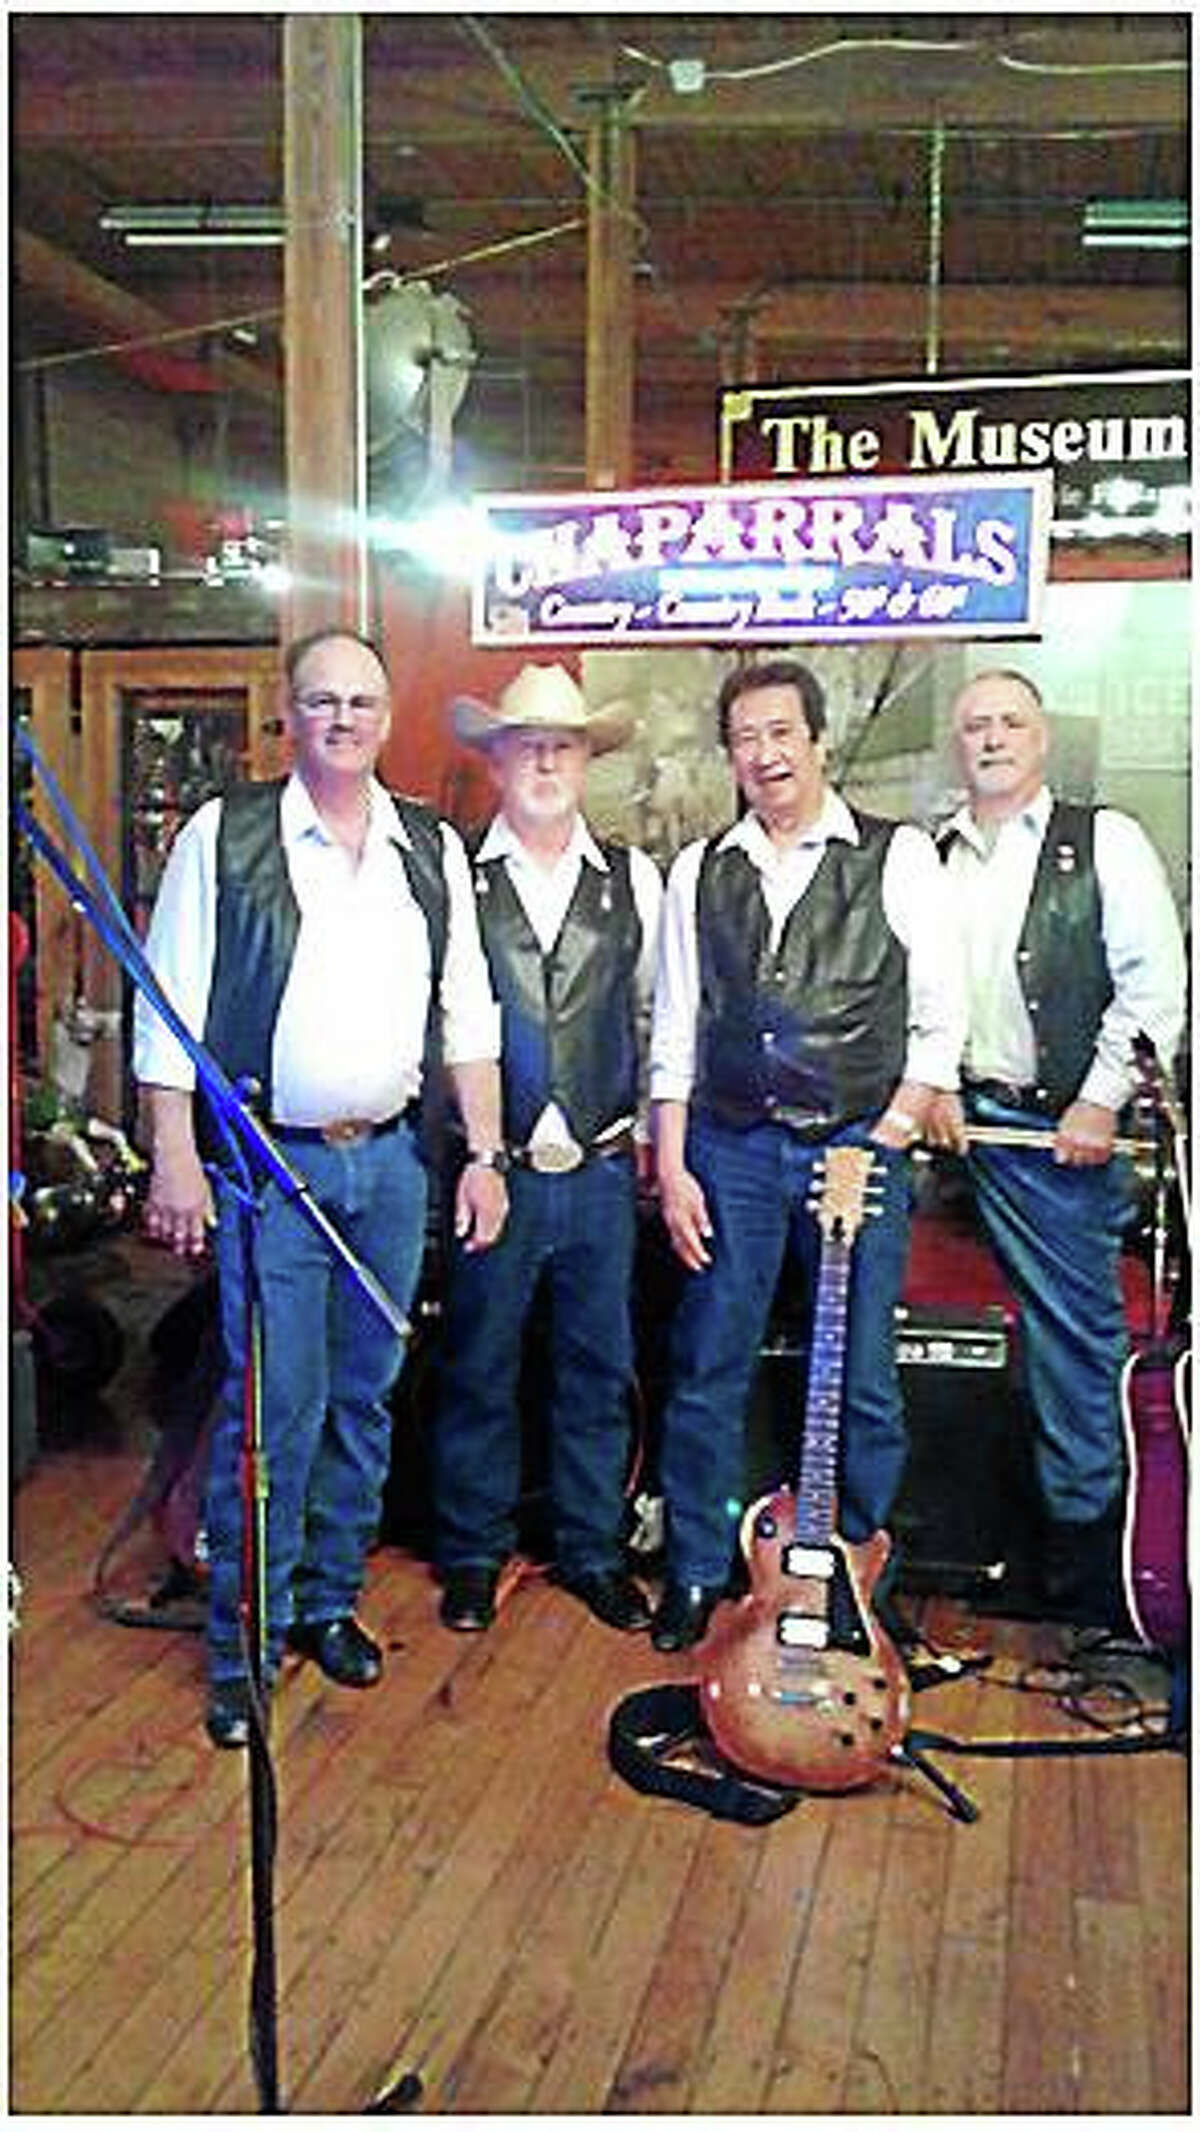 Contributed photo The Chaparrals will play a benefit concert Dec. 12 at the New England Carousel Museum to benefit the Burlington Congregational Church's efforts to purchase a new organ.